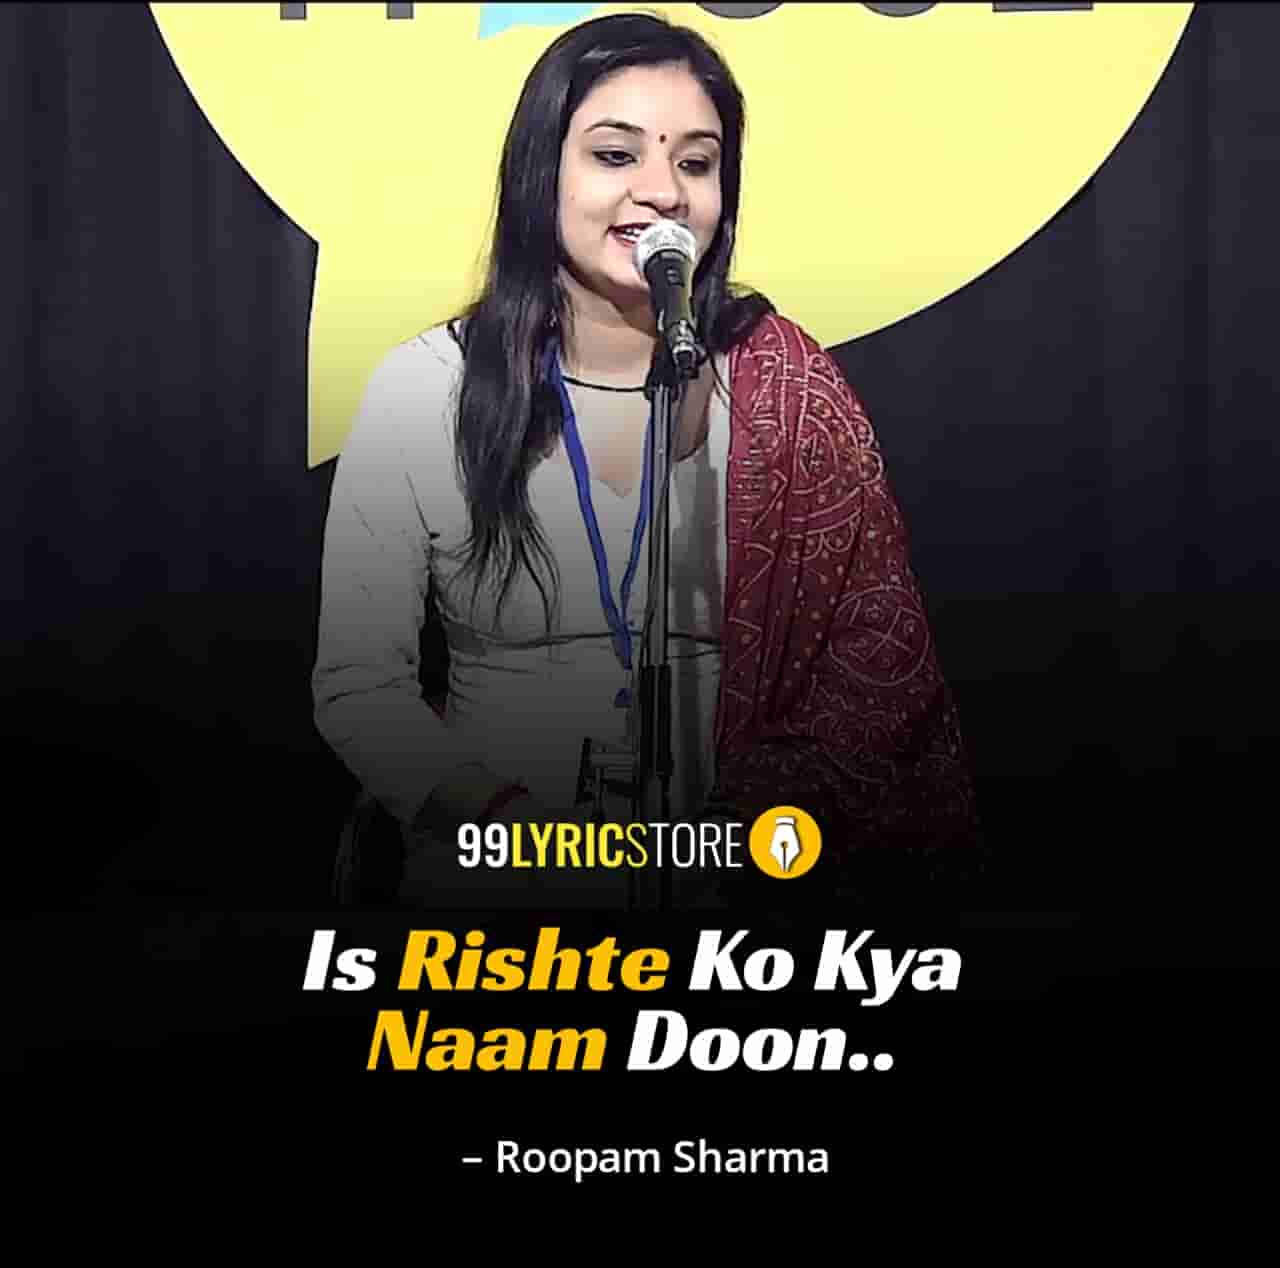 The beautiful love poetry 'Is Rishte Ko Kya Naam Doon' has written and performed by Roopam Sharma on The Social House's Plateform.